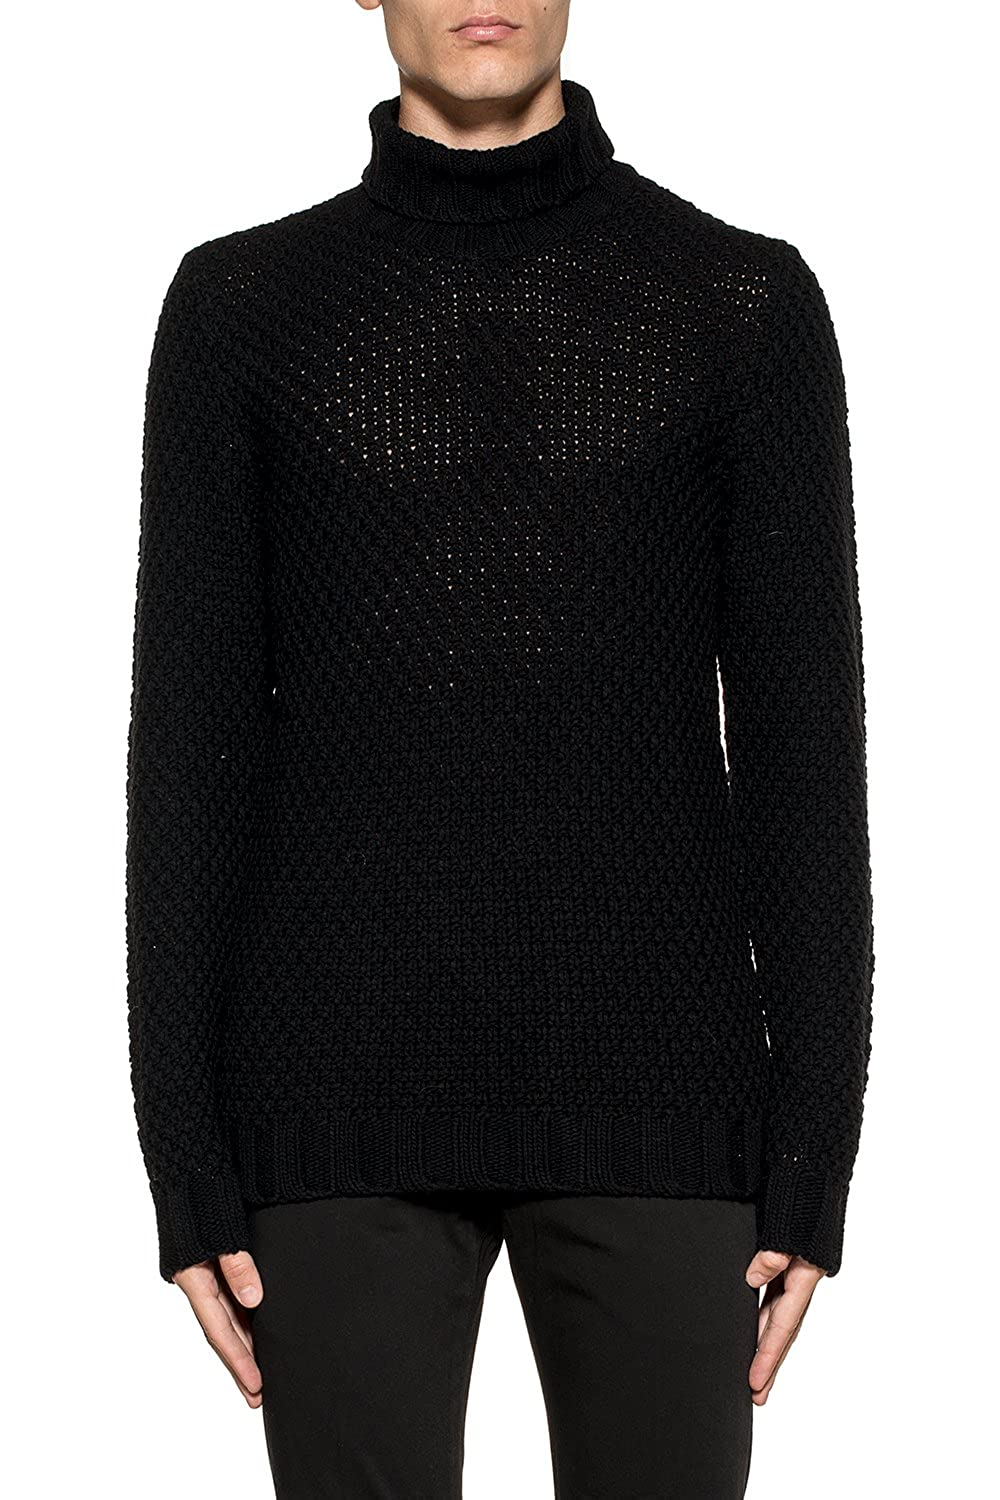 Become Homme 587371A09 Noir Laine Maille